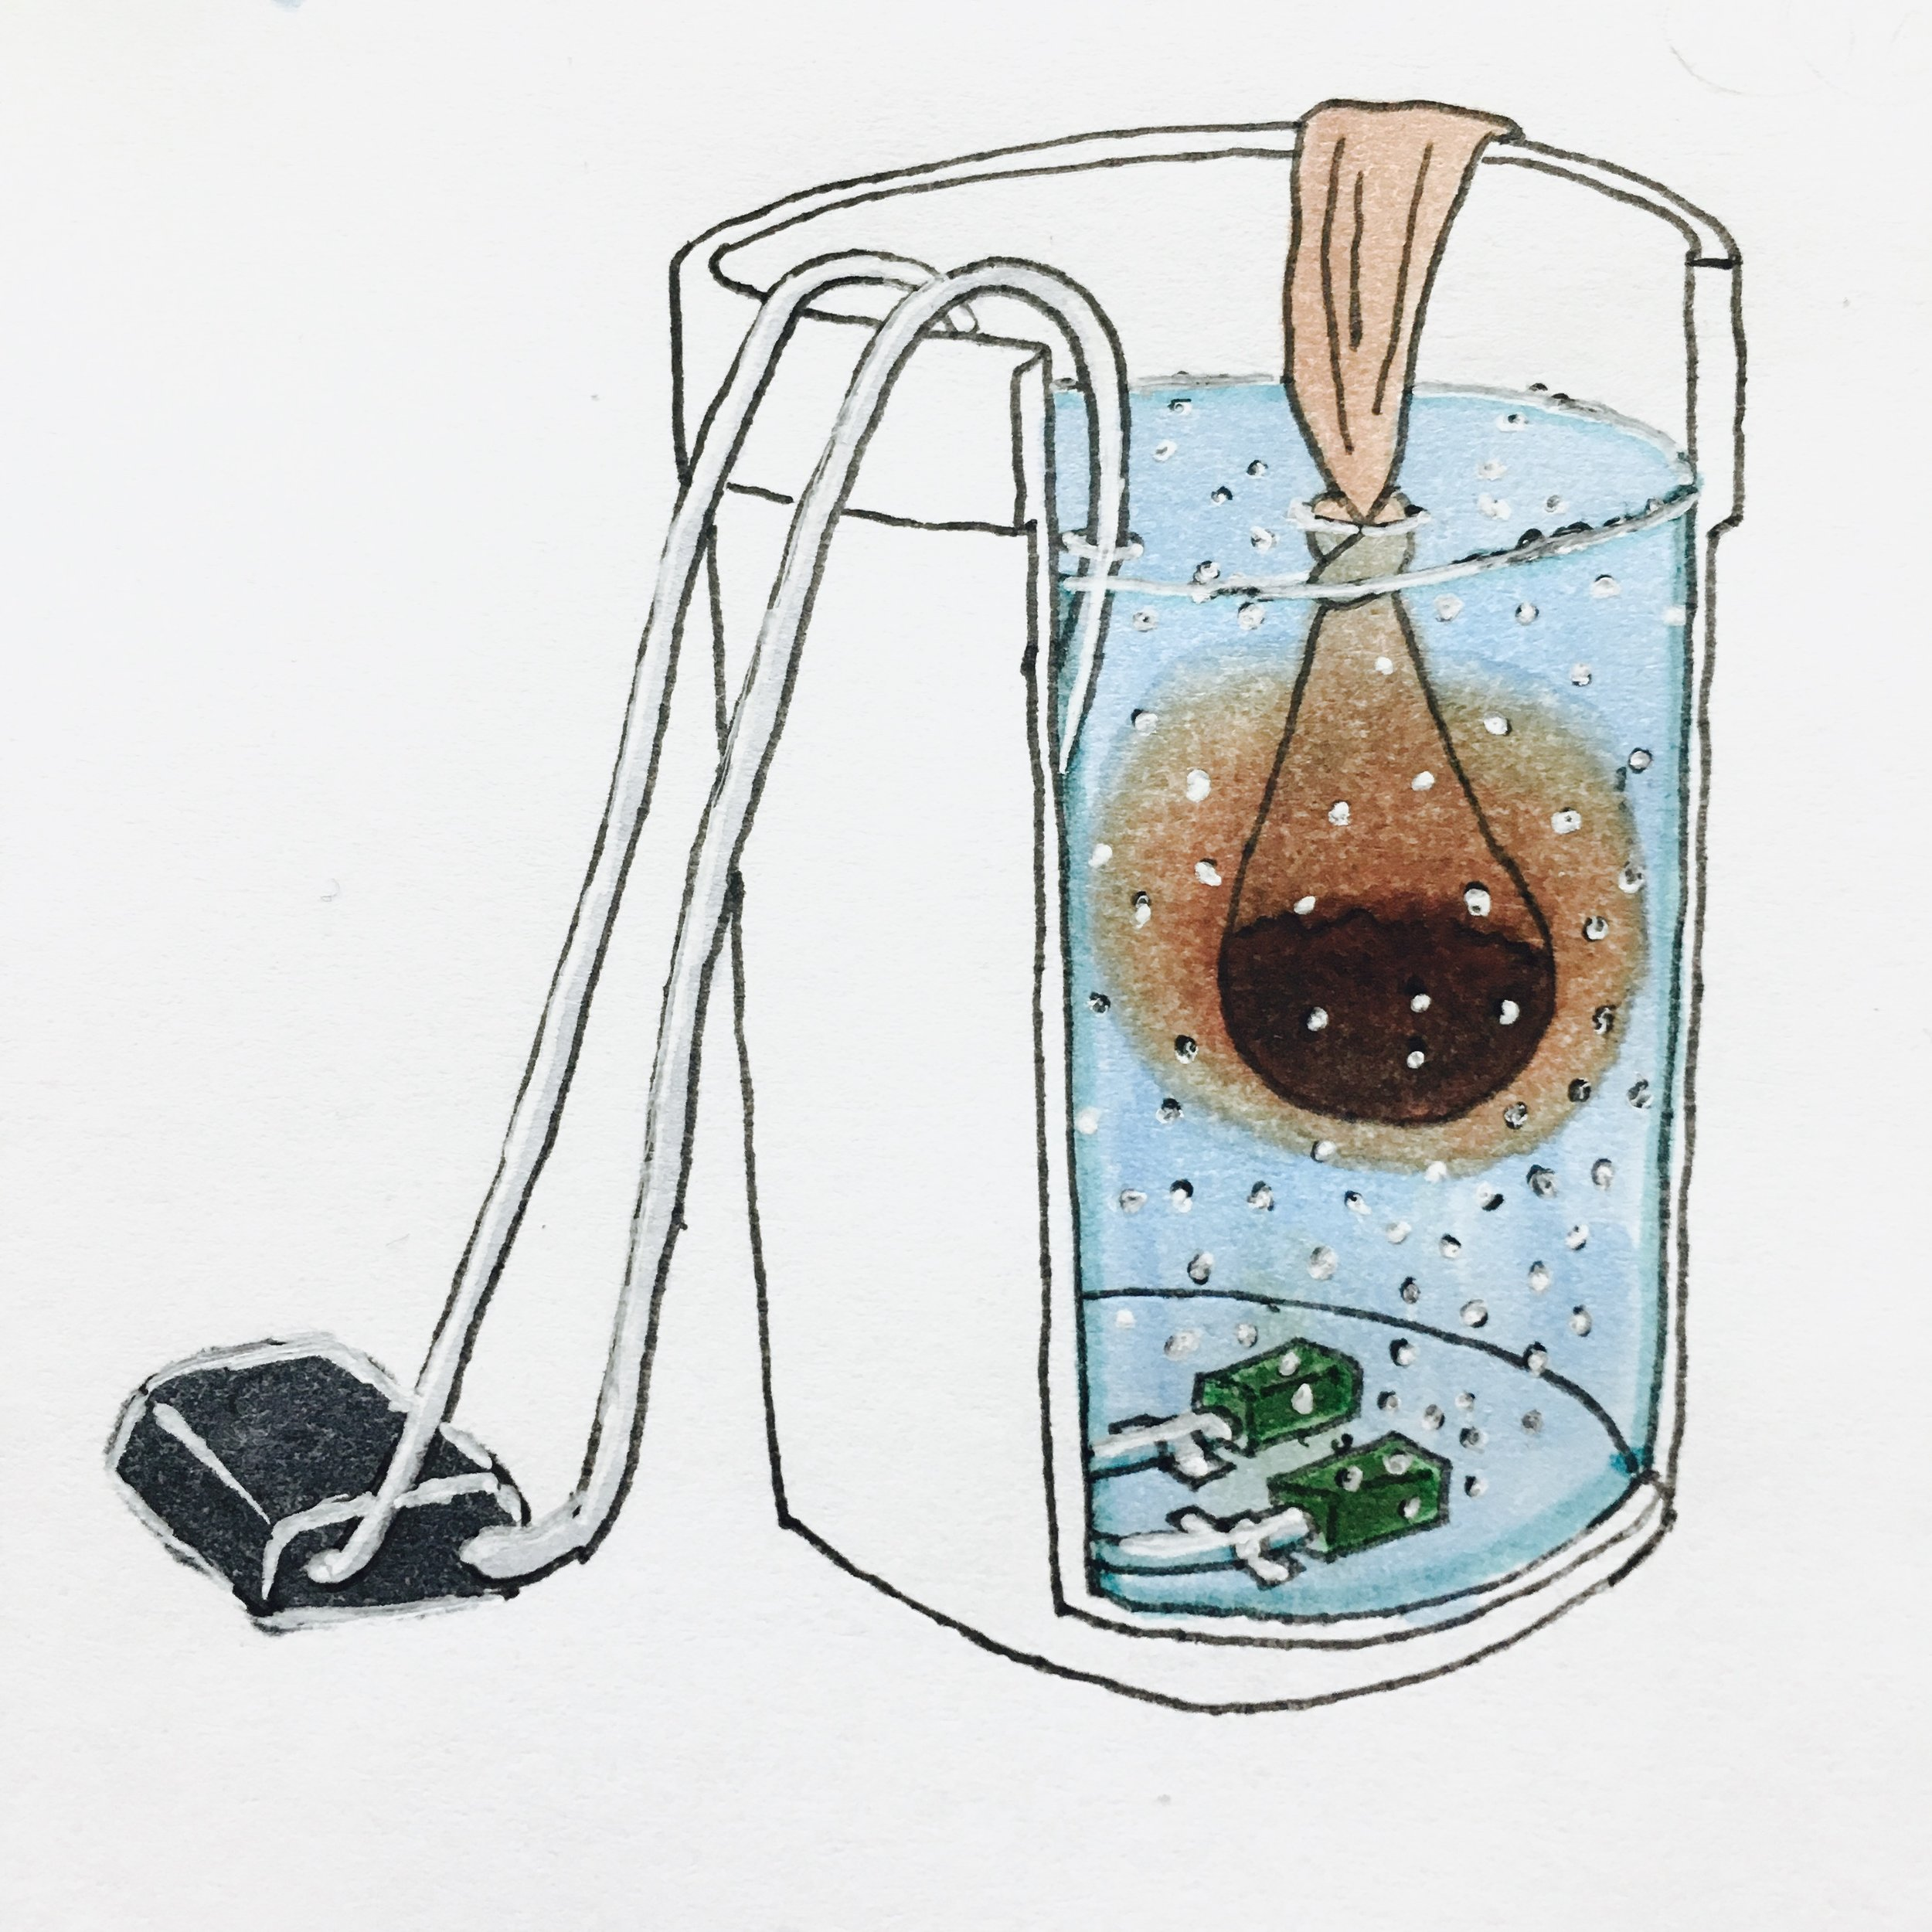 For a basic compost tea setup, suspend a permeable bag of finished compost in a five-gallon bucket. Add some food for your microbes and use an aquarium pump and airstones to aerate the water for 24-48 hours.